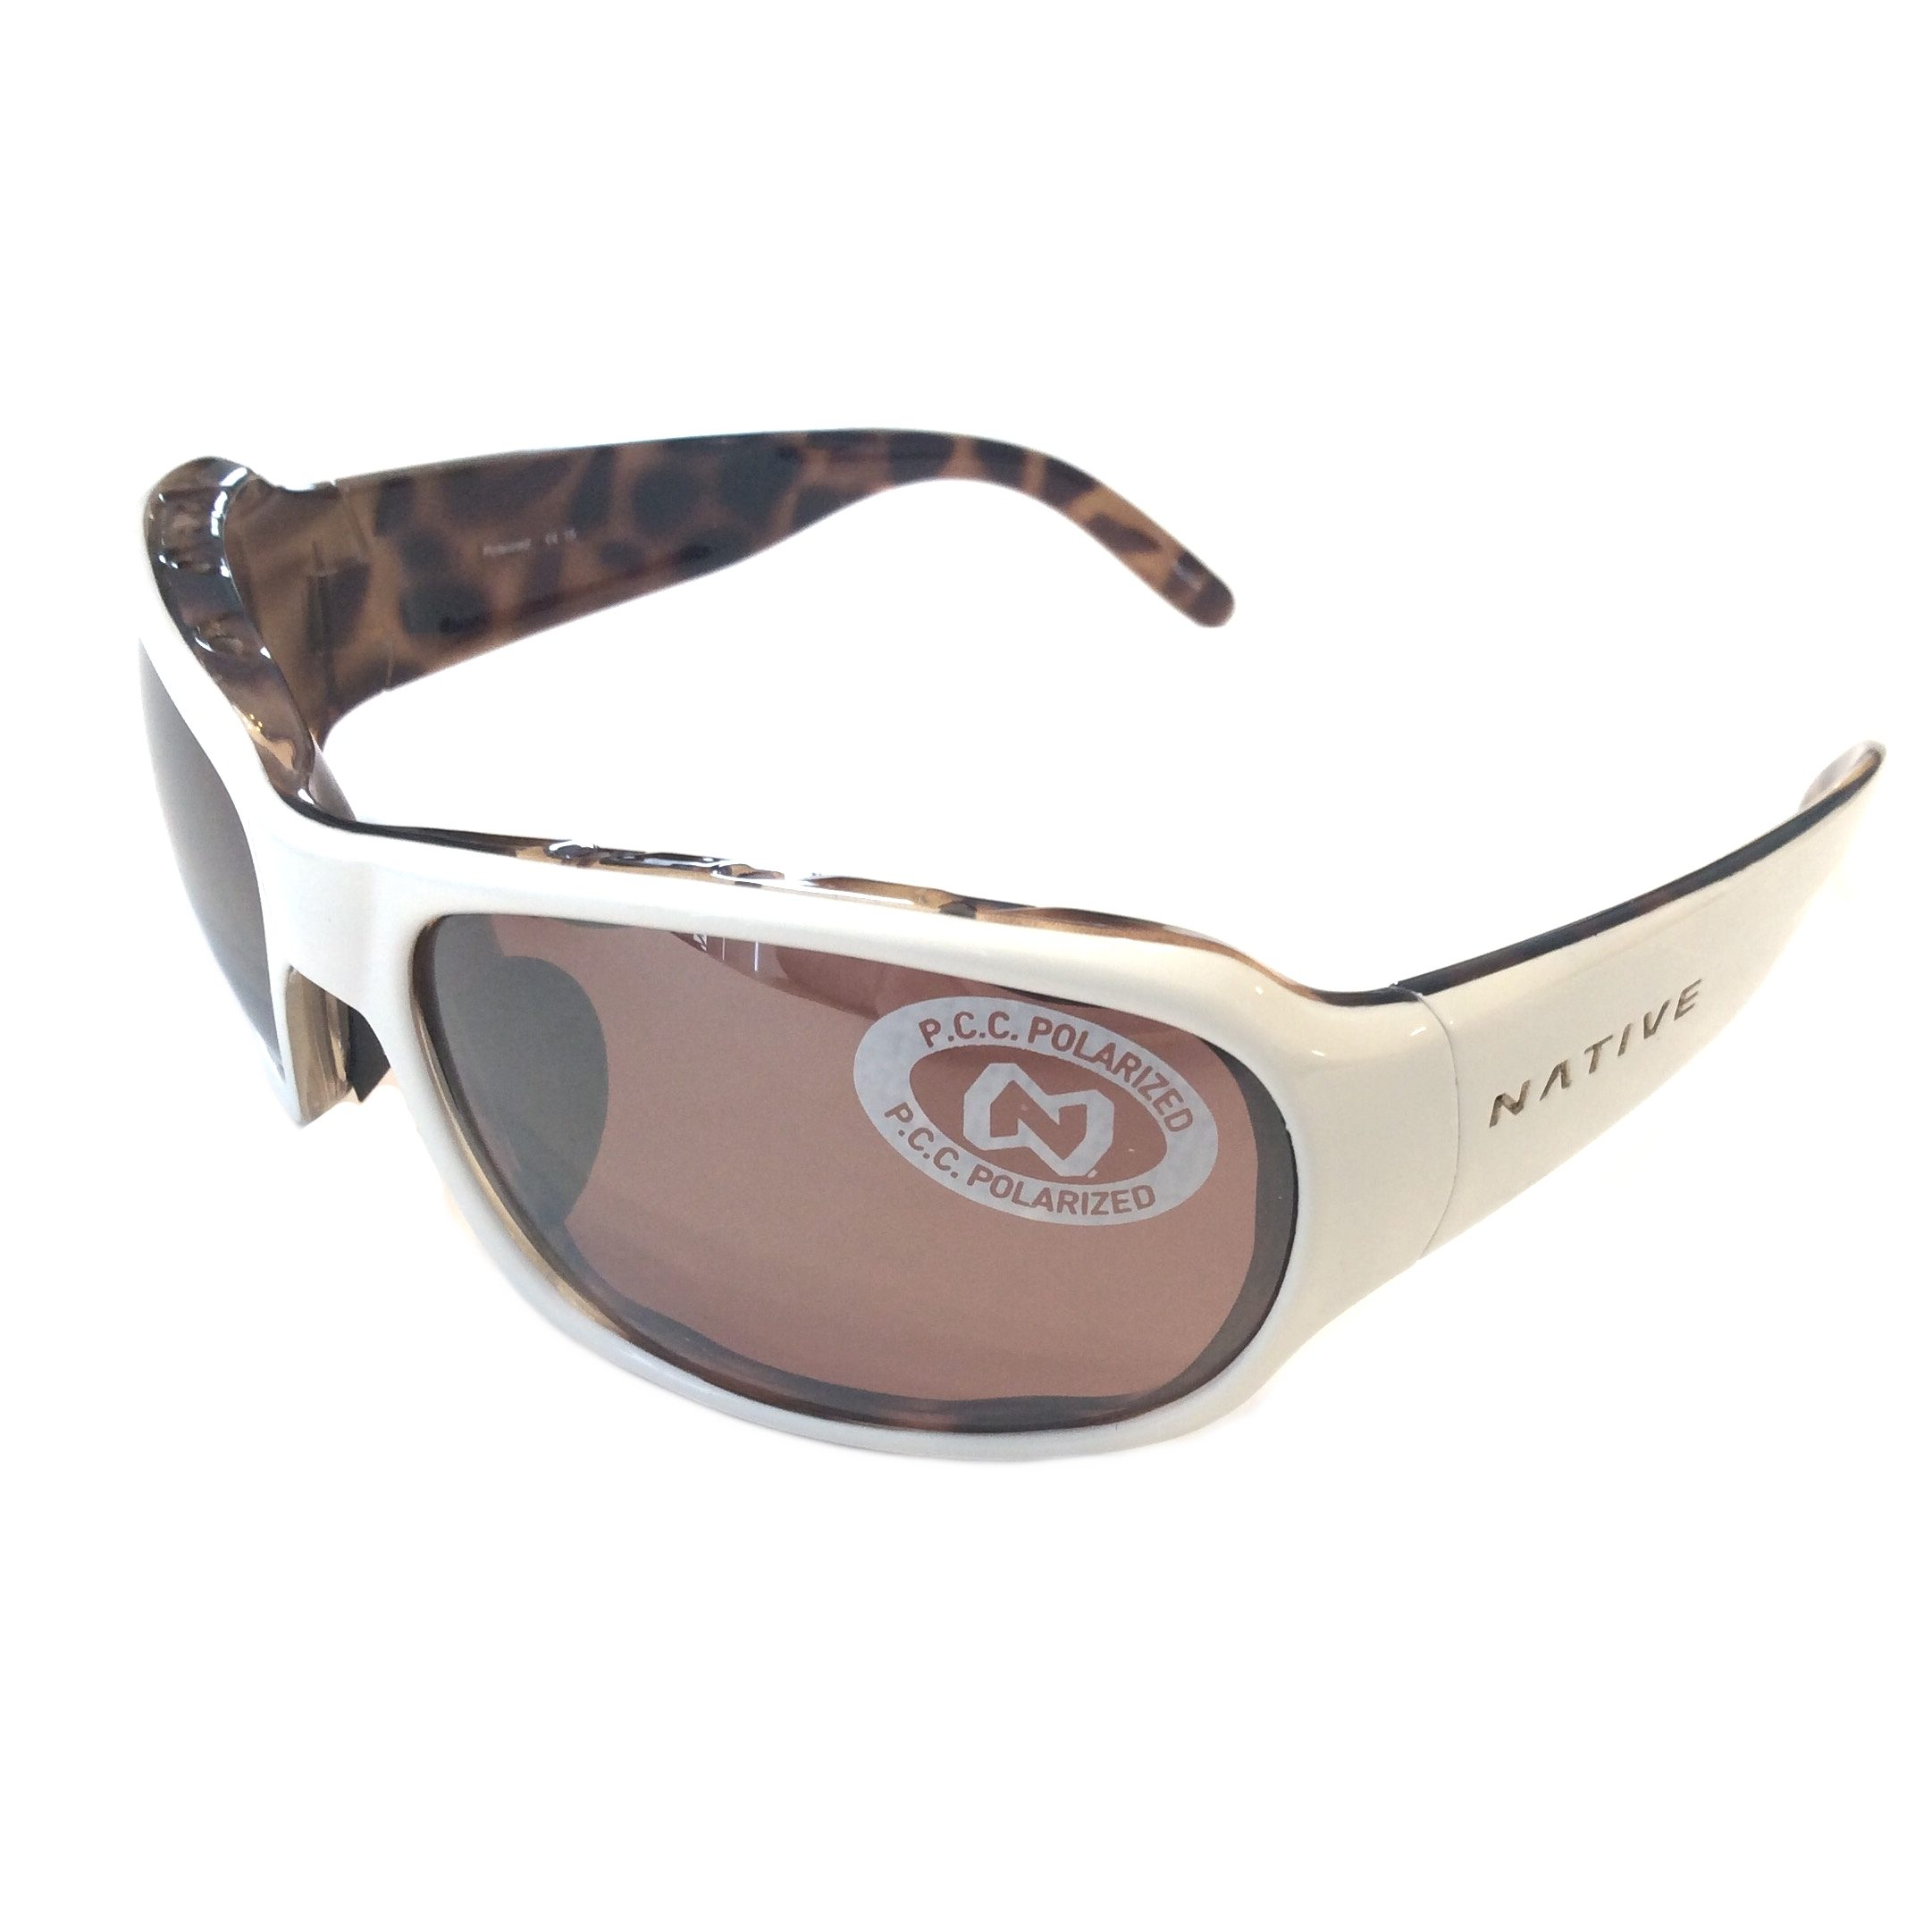 Copper Polarized Sunglasses  native eyewear solo sunglasses sahara white frame polarized